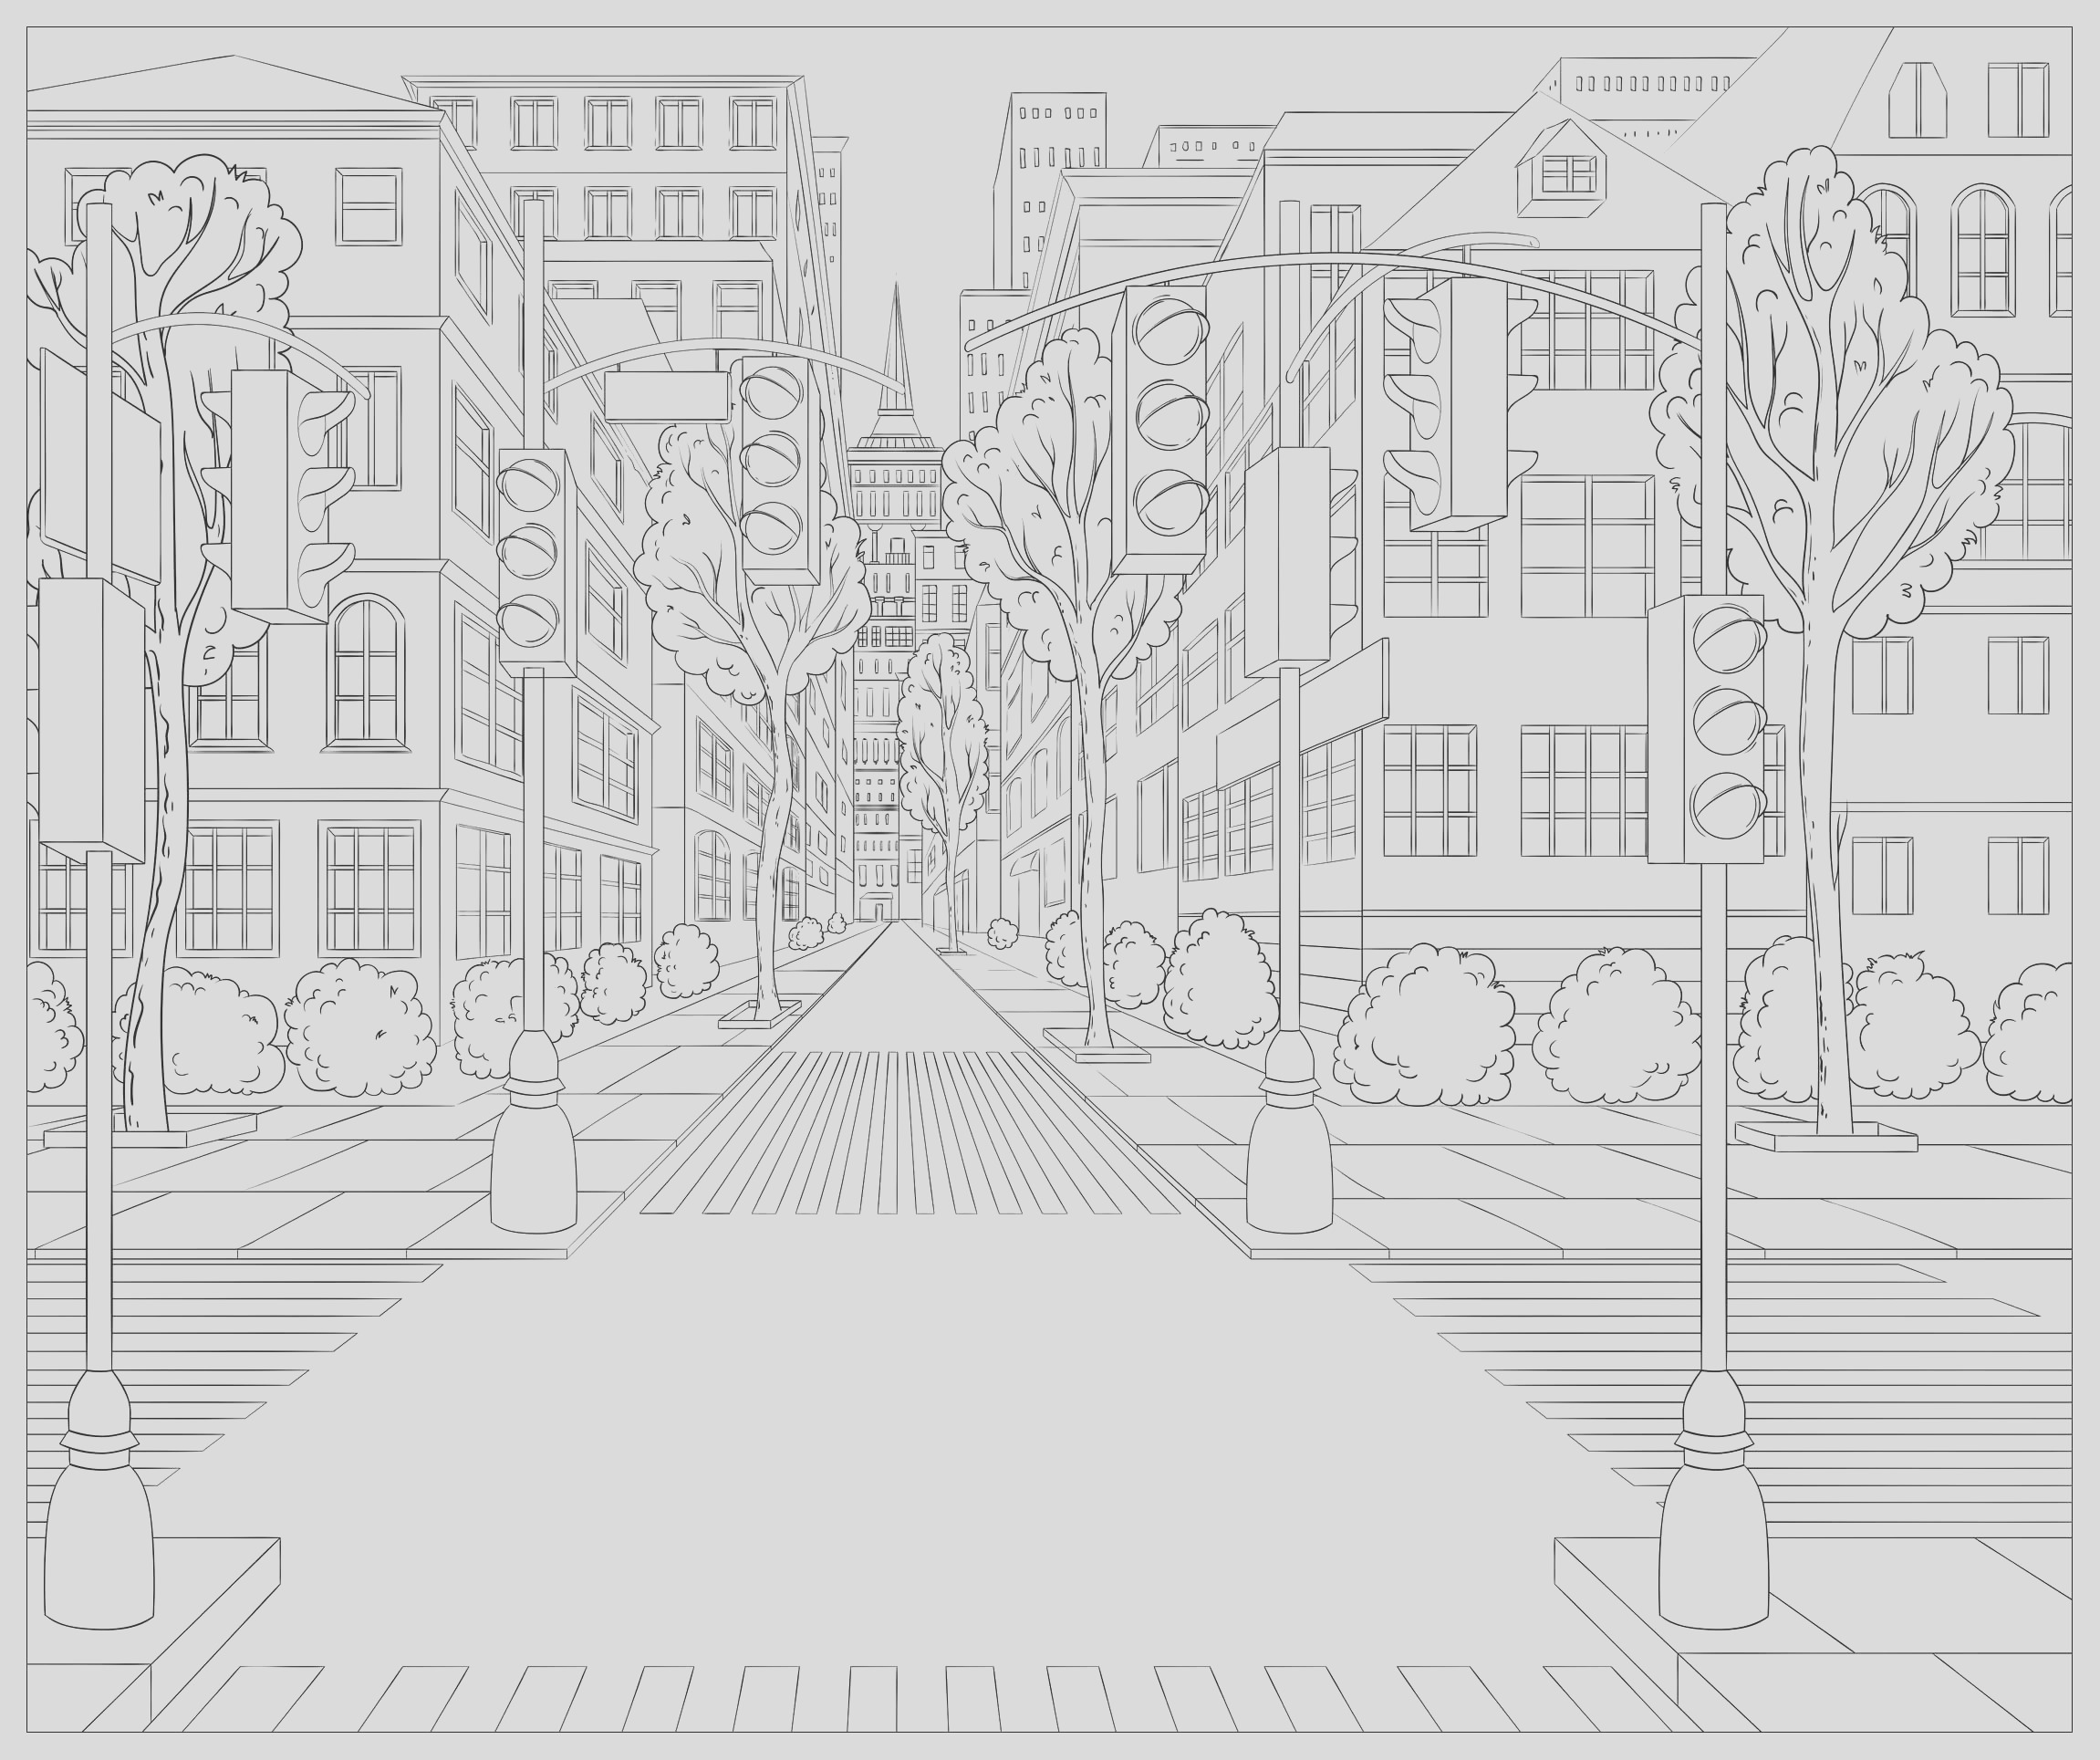 image=architecture home coloring typical north america street 1